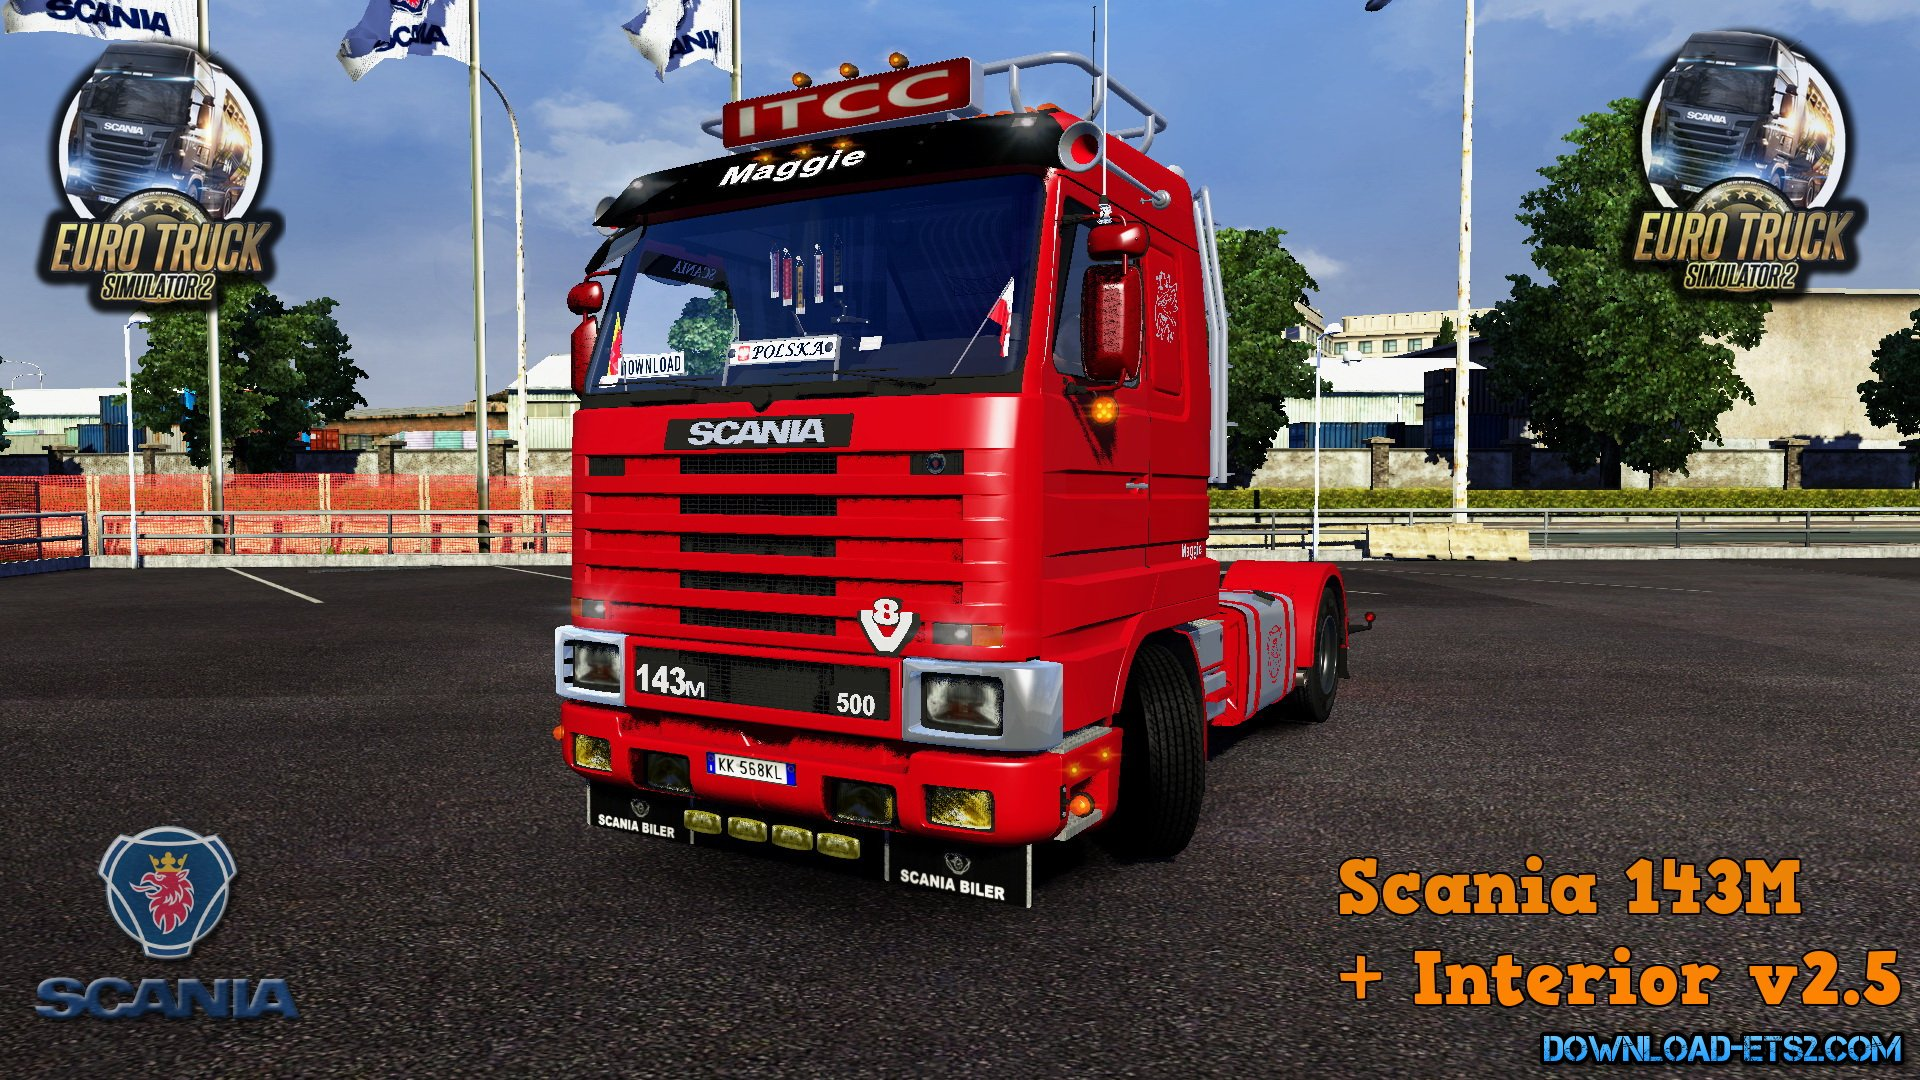 Scania 143M + Interior v2.5 edit by Ekualizer